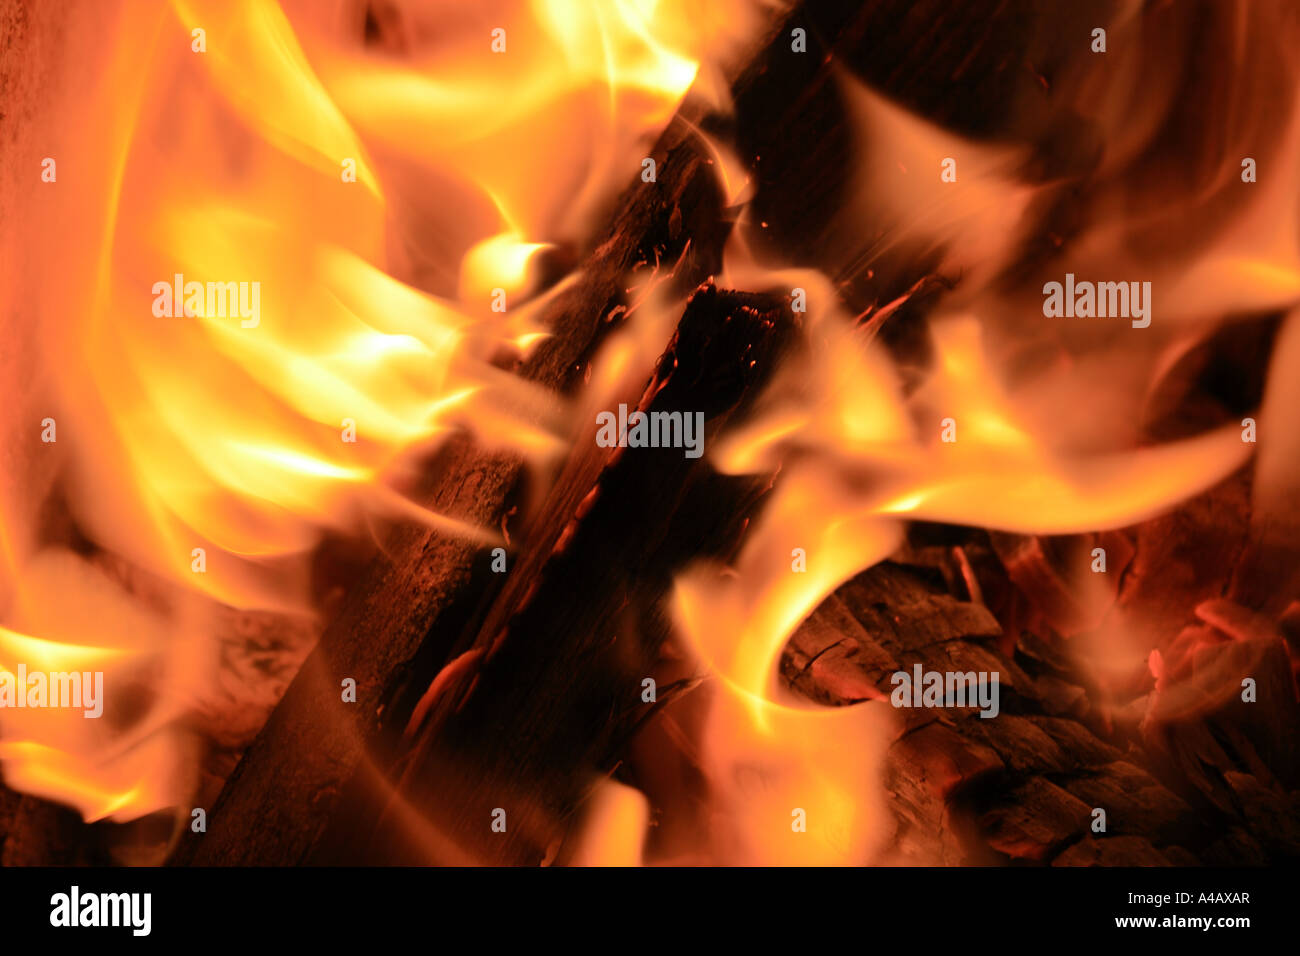 close up of an open fire. Photo by Willy Matheisl - Stock Image